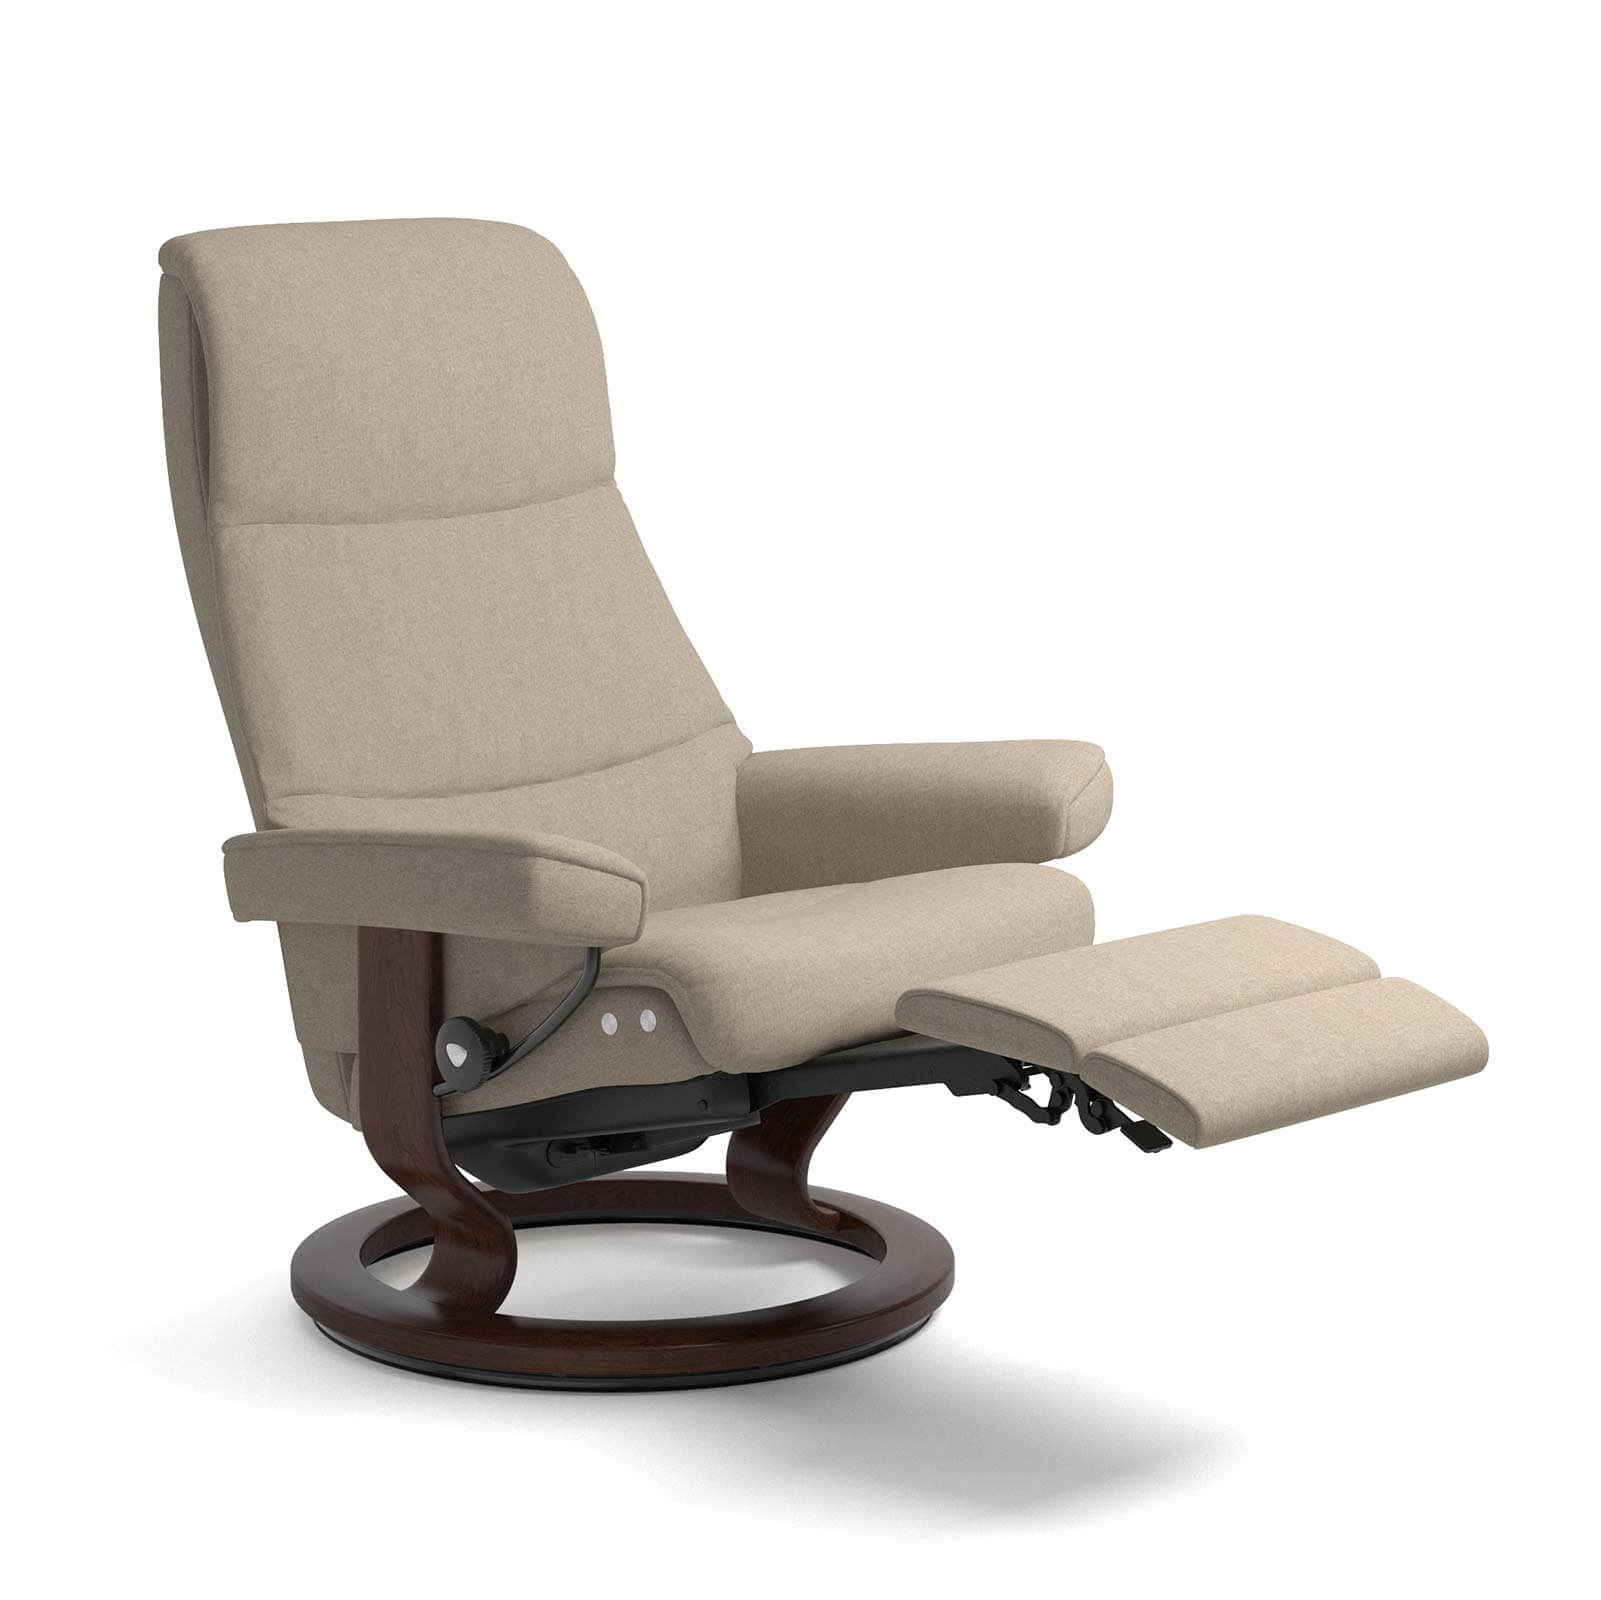 Stressless Sessel Berlin Stressless View Legcomfort Calido Light Beige Stressless